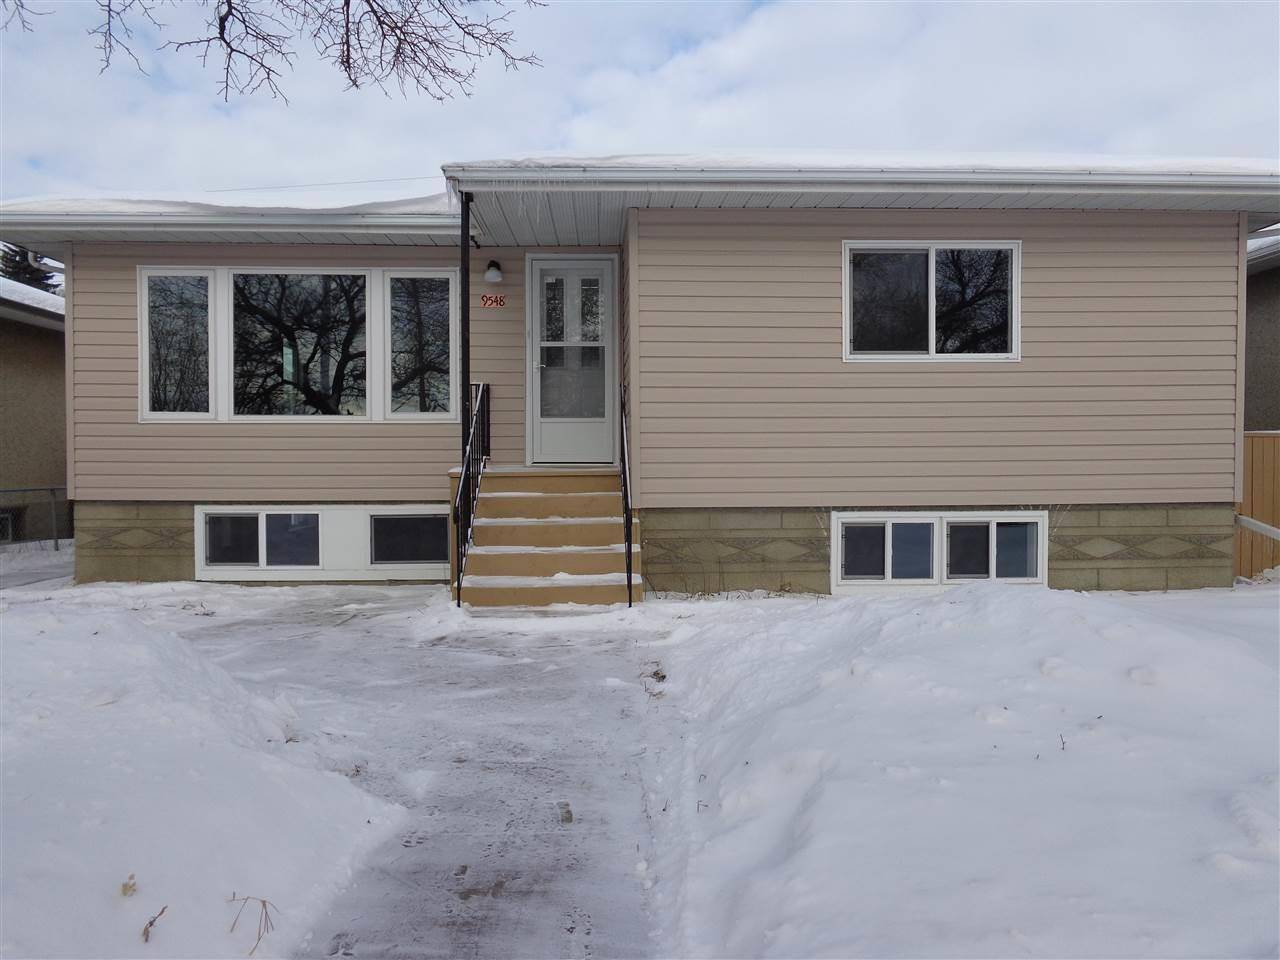 House for sale at 9548 63 Ave Nw Edmonton Alberta - MLS: E4187744